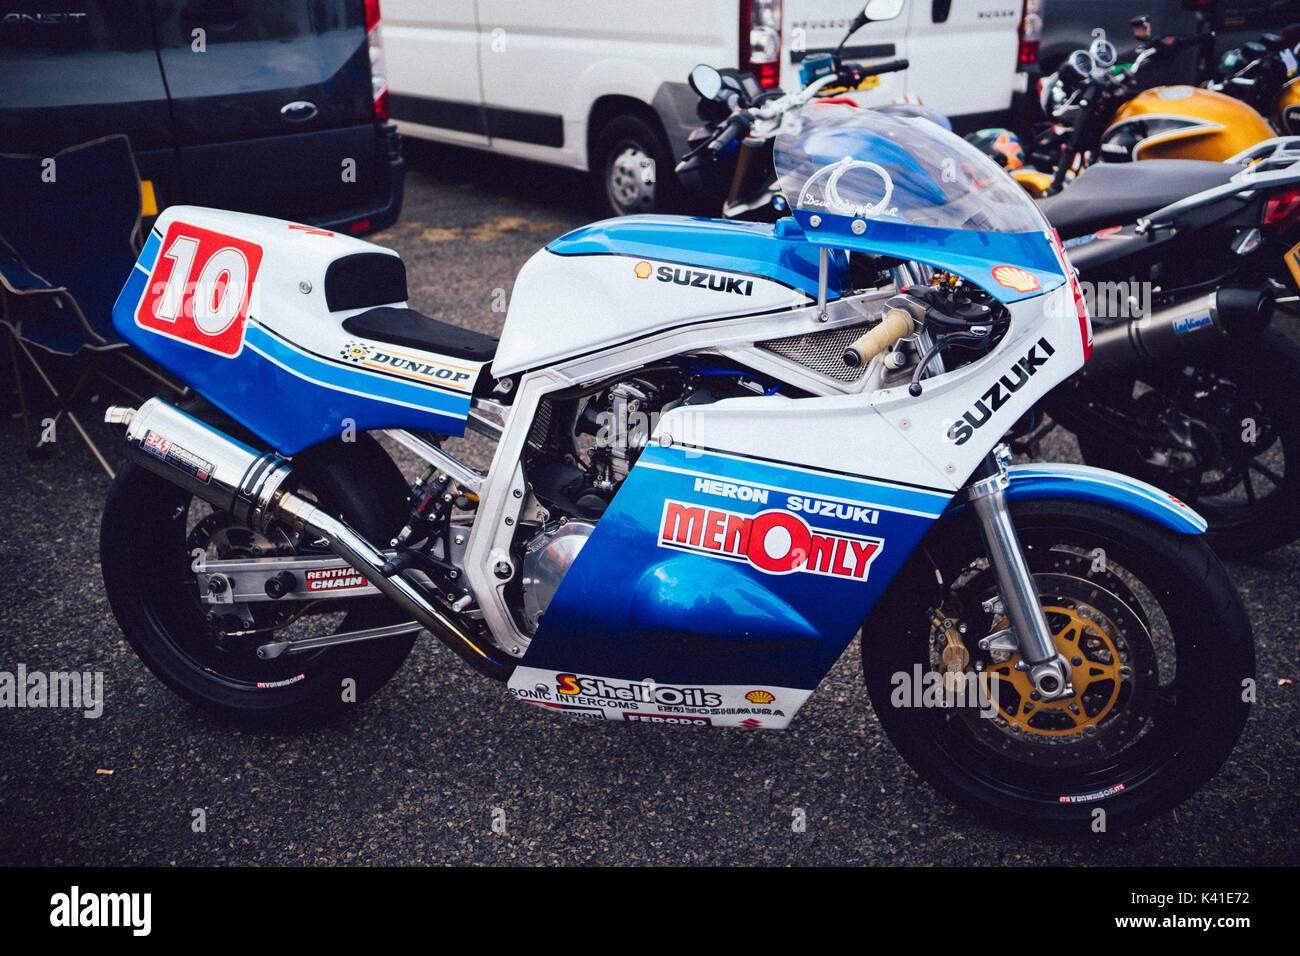 mv agusta racing bike stock photos mv agusta racing bike stock images alamy. Black Bedroom Furniture Sets. Home Design Ideas